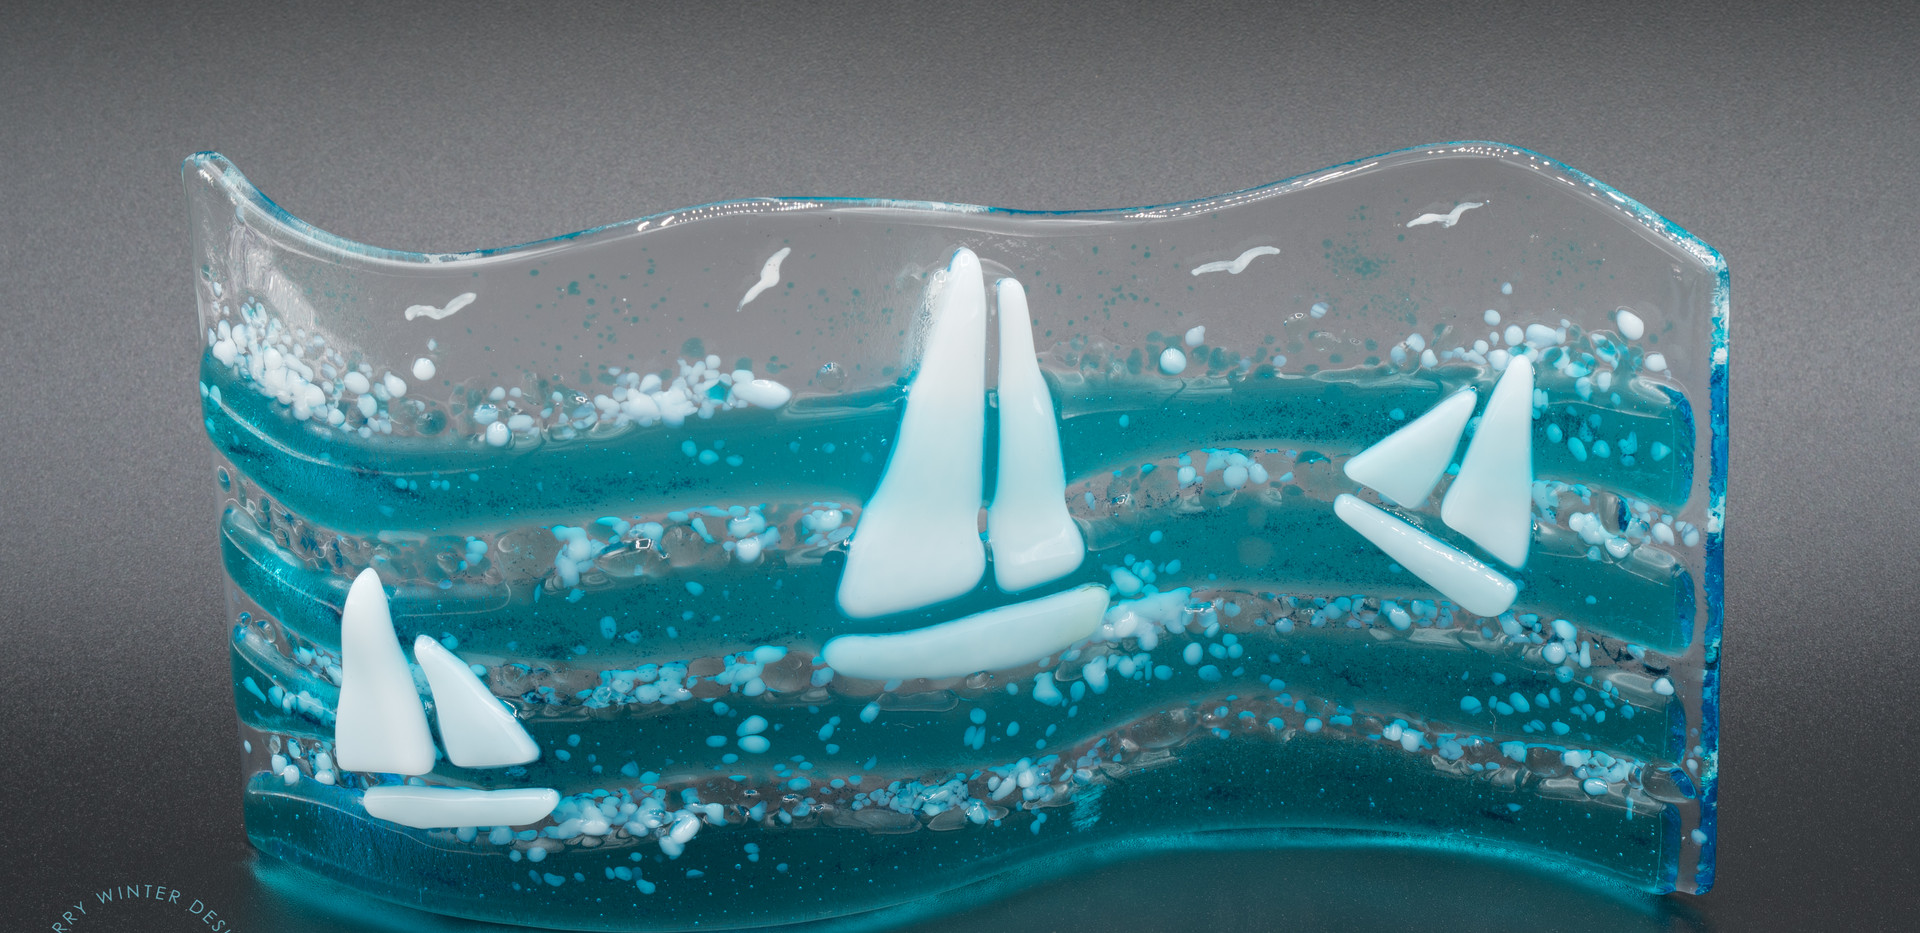 waves and boats.jpg